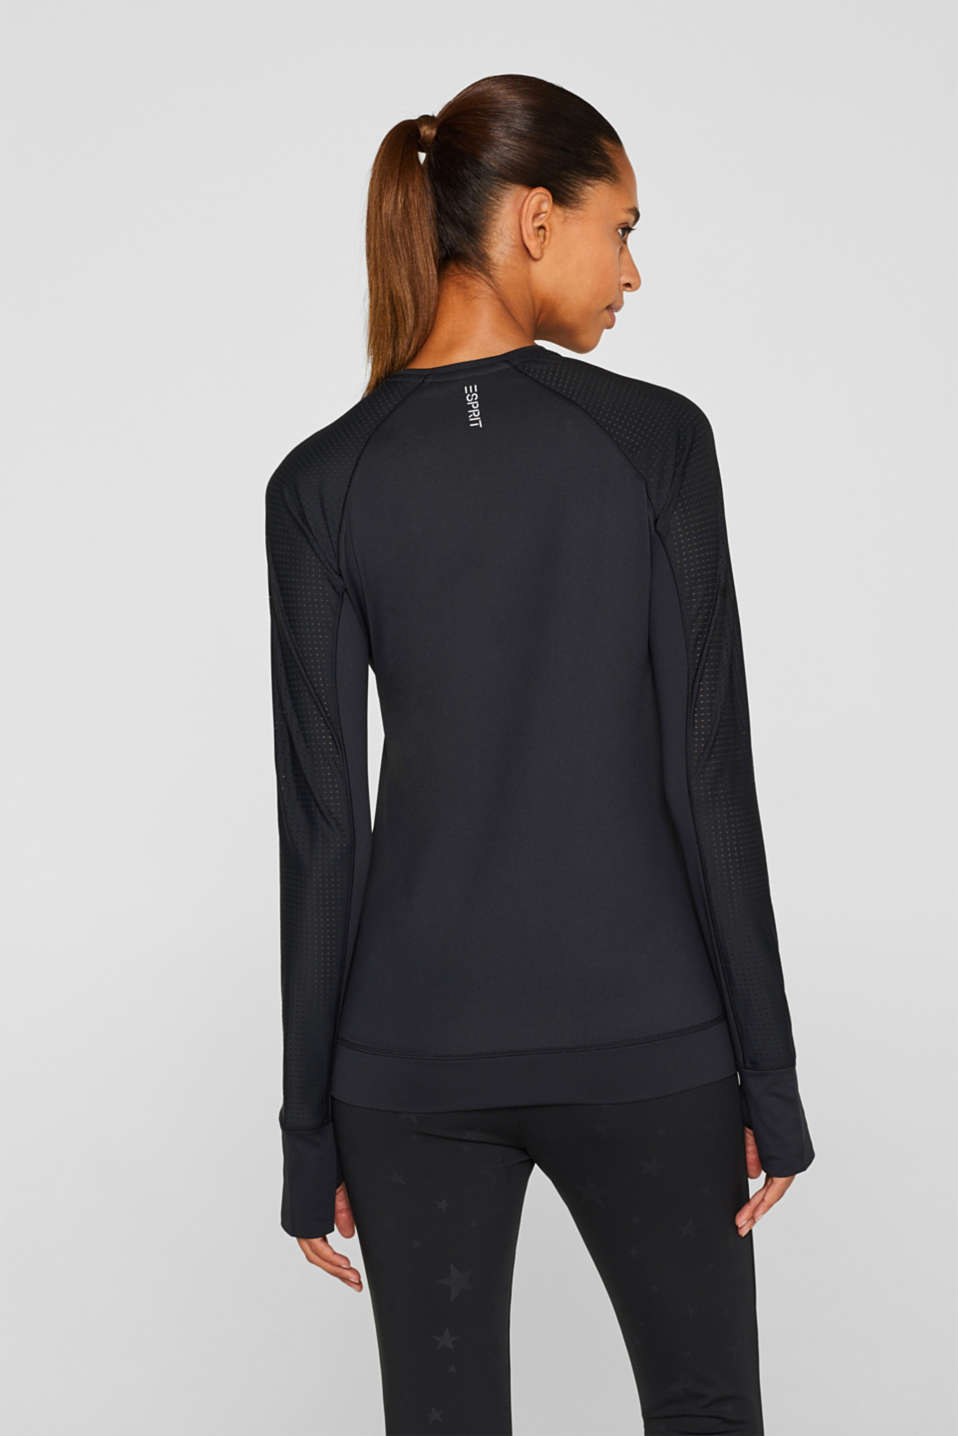 Stretchy long sleeve top with mesh sleeves, E-DRY, BLACK, detail image number 1